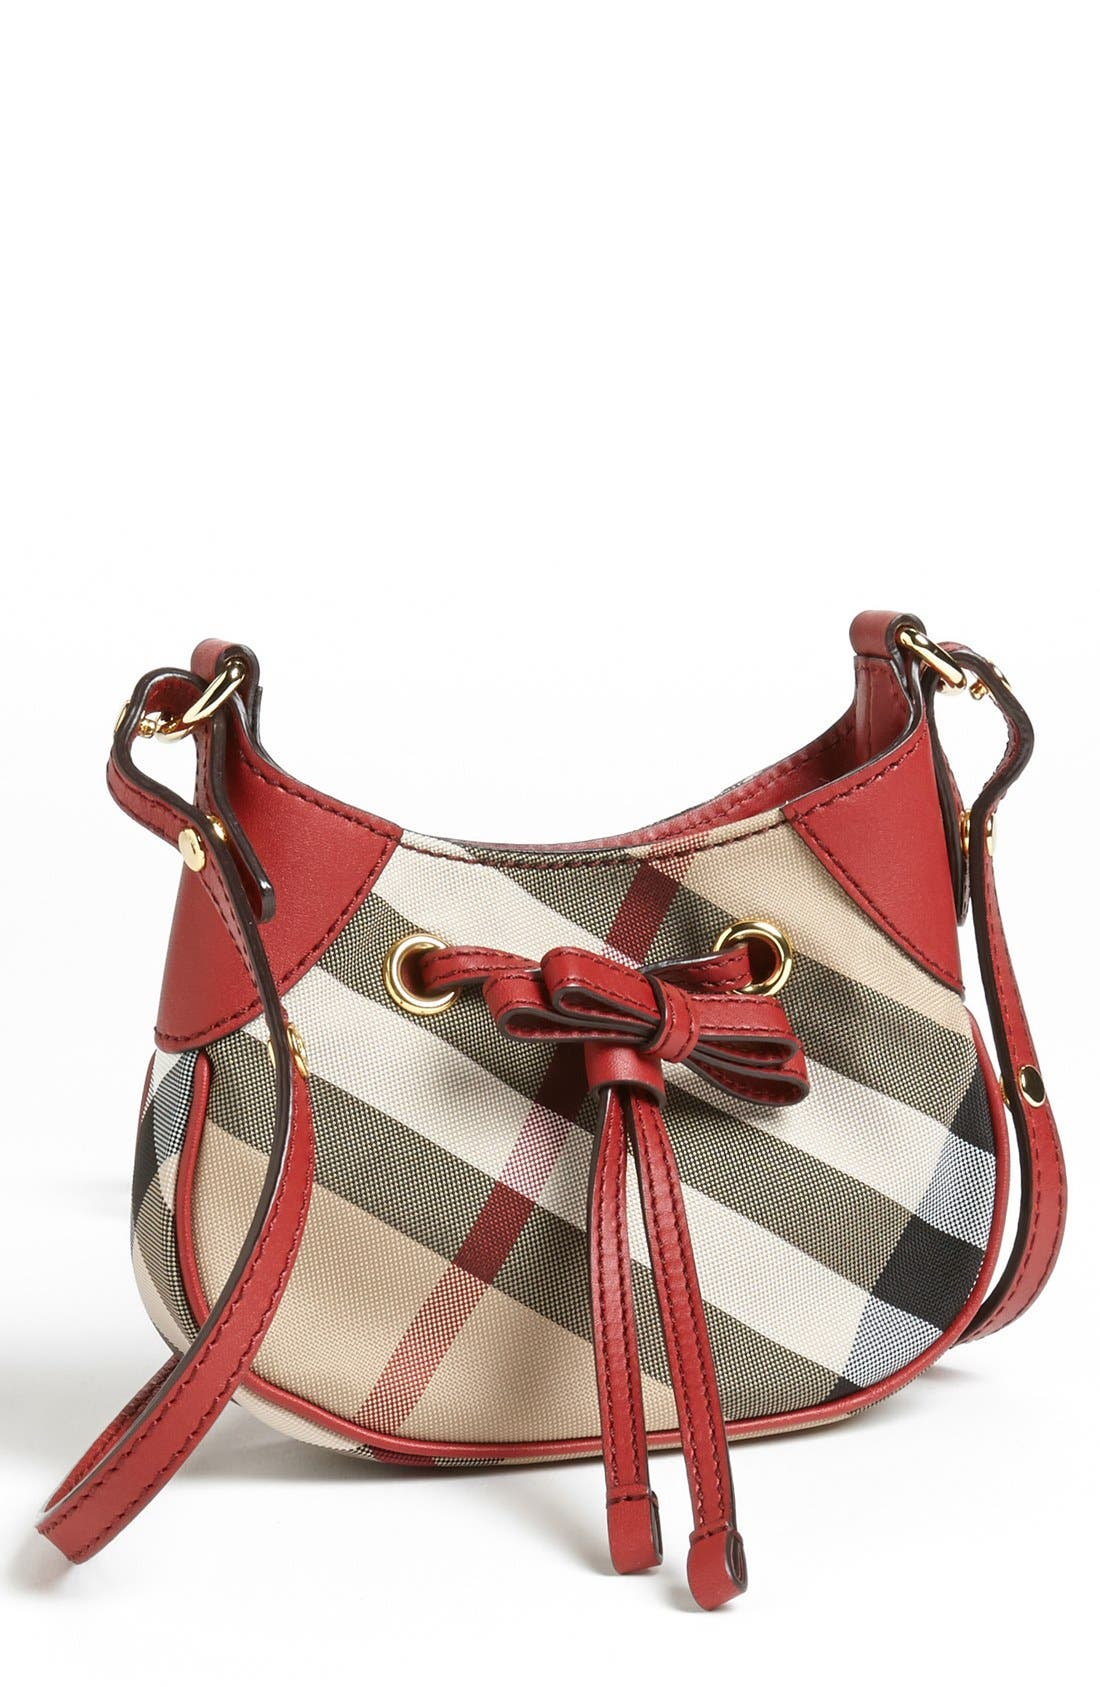 BURBERRY,                             Crossbody Bag,                             Main thumbnail 1, color,                             609